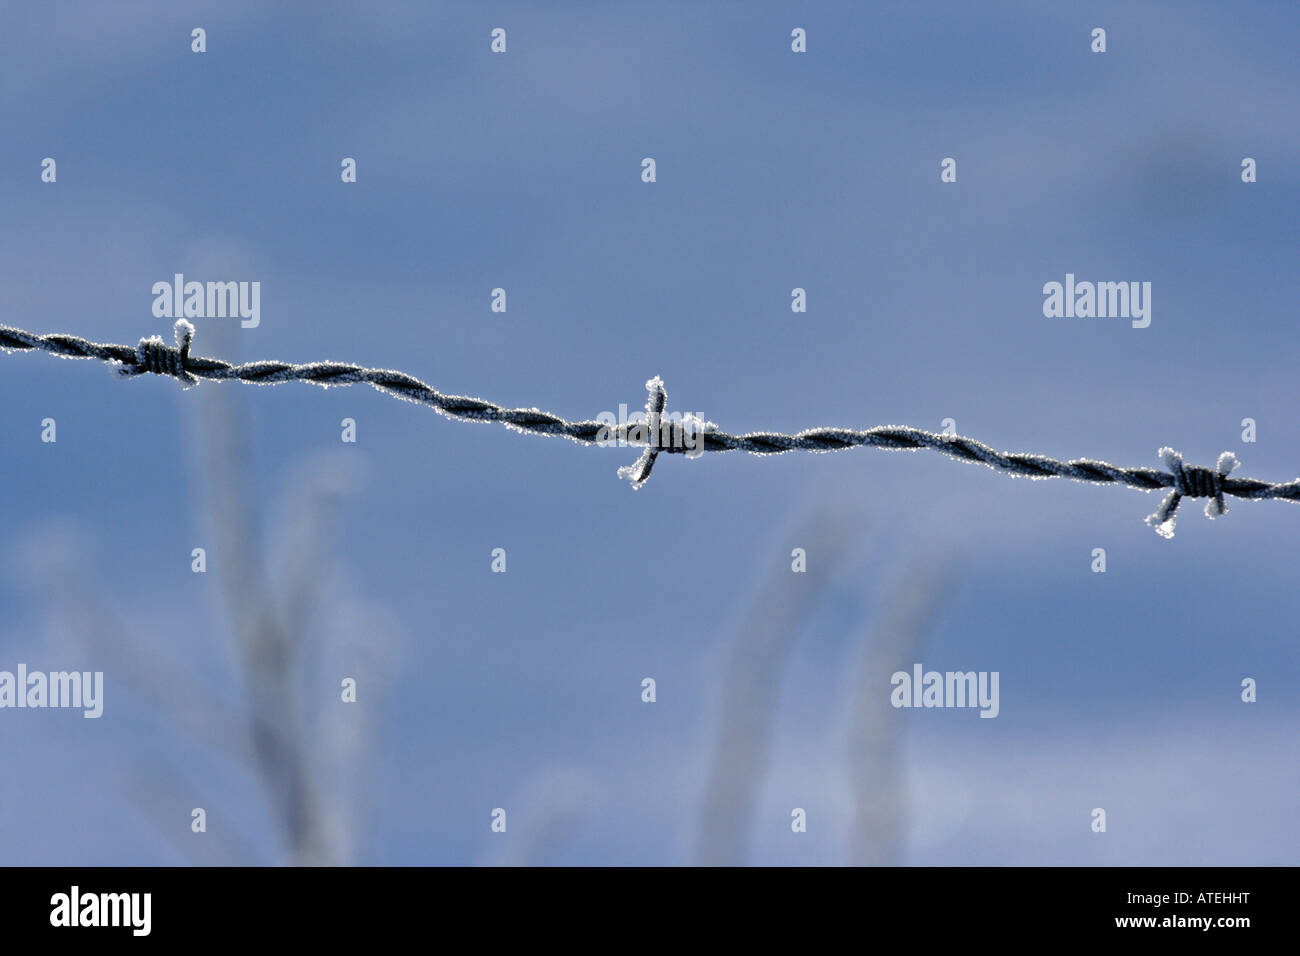 Wire Figures Stock Photos & Wire Figures Stock Images - Alamy